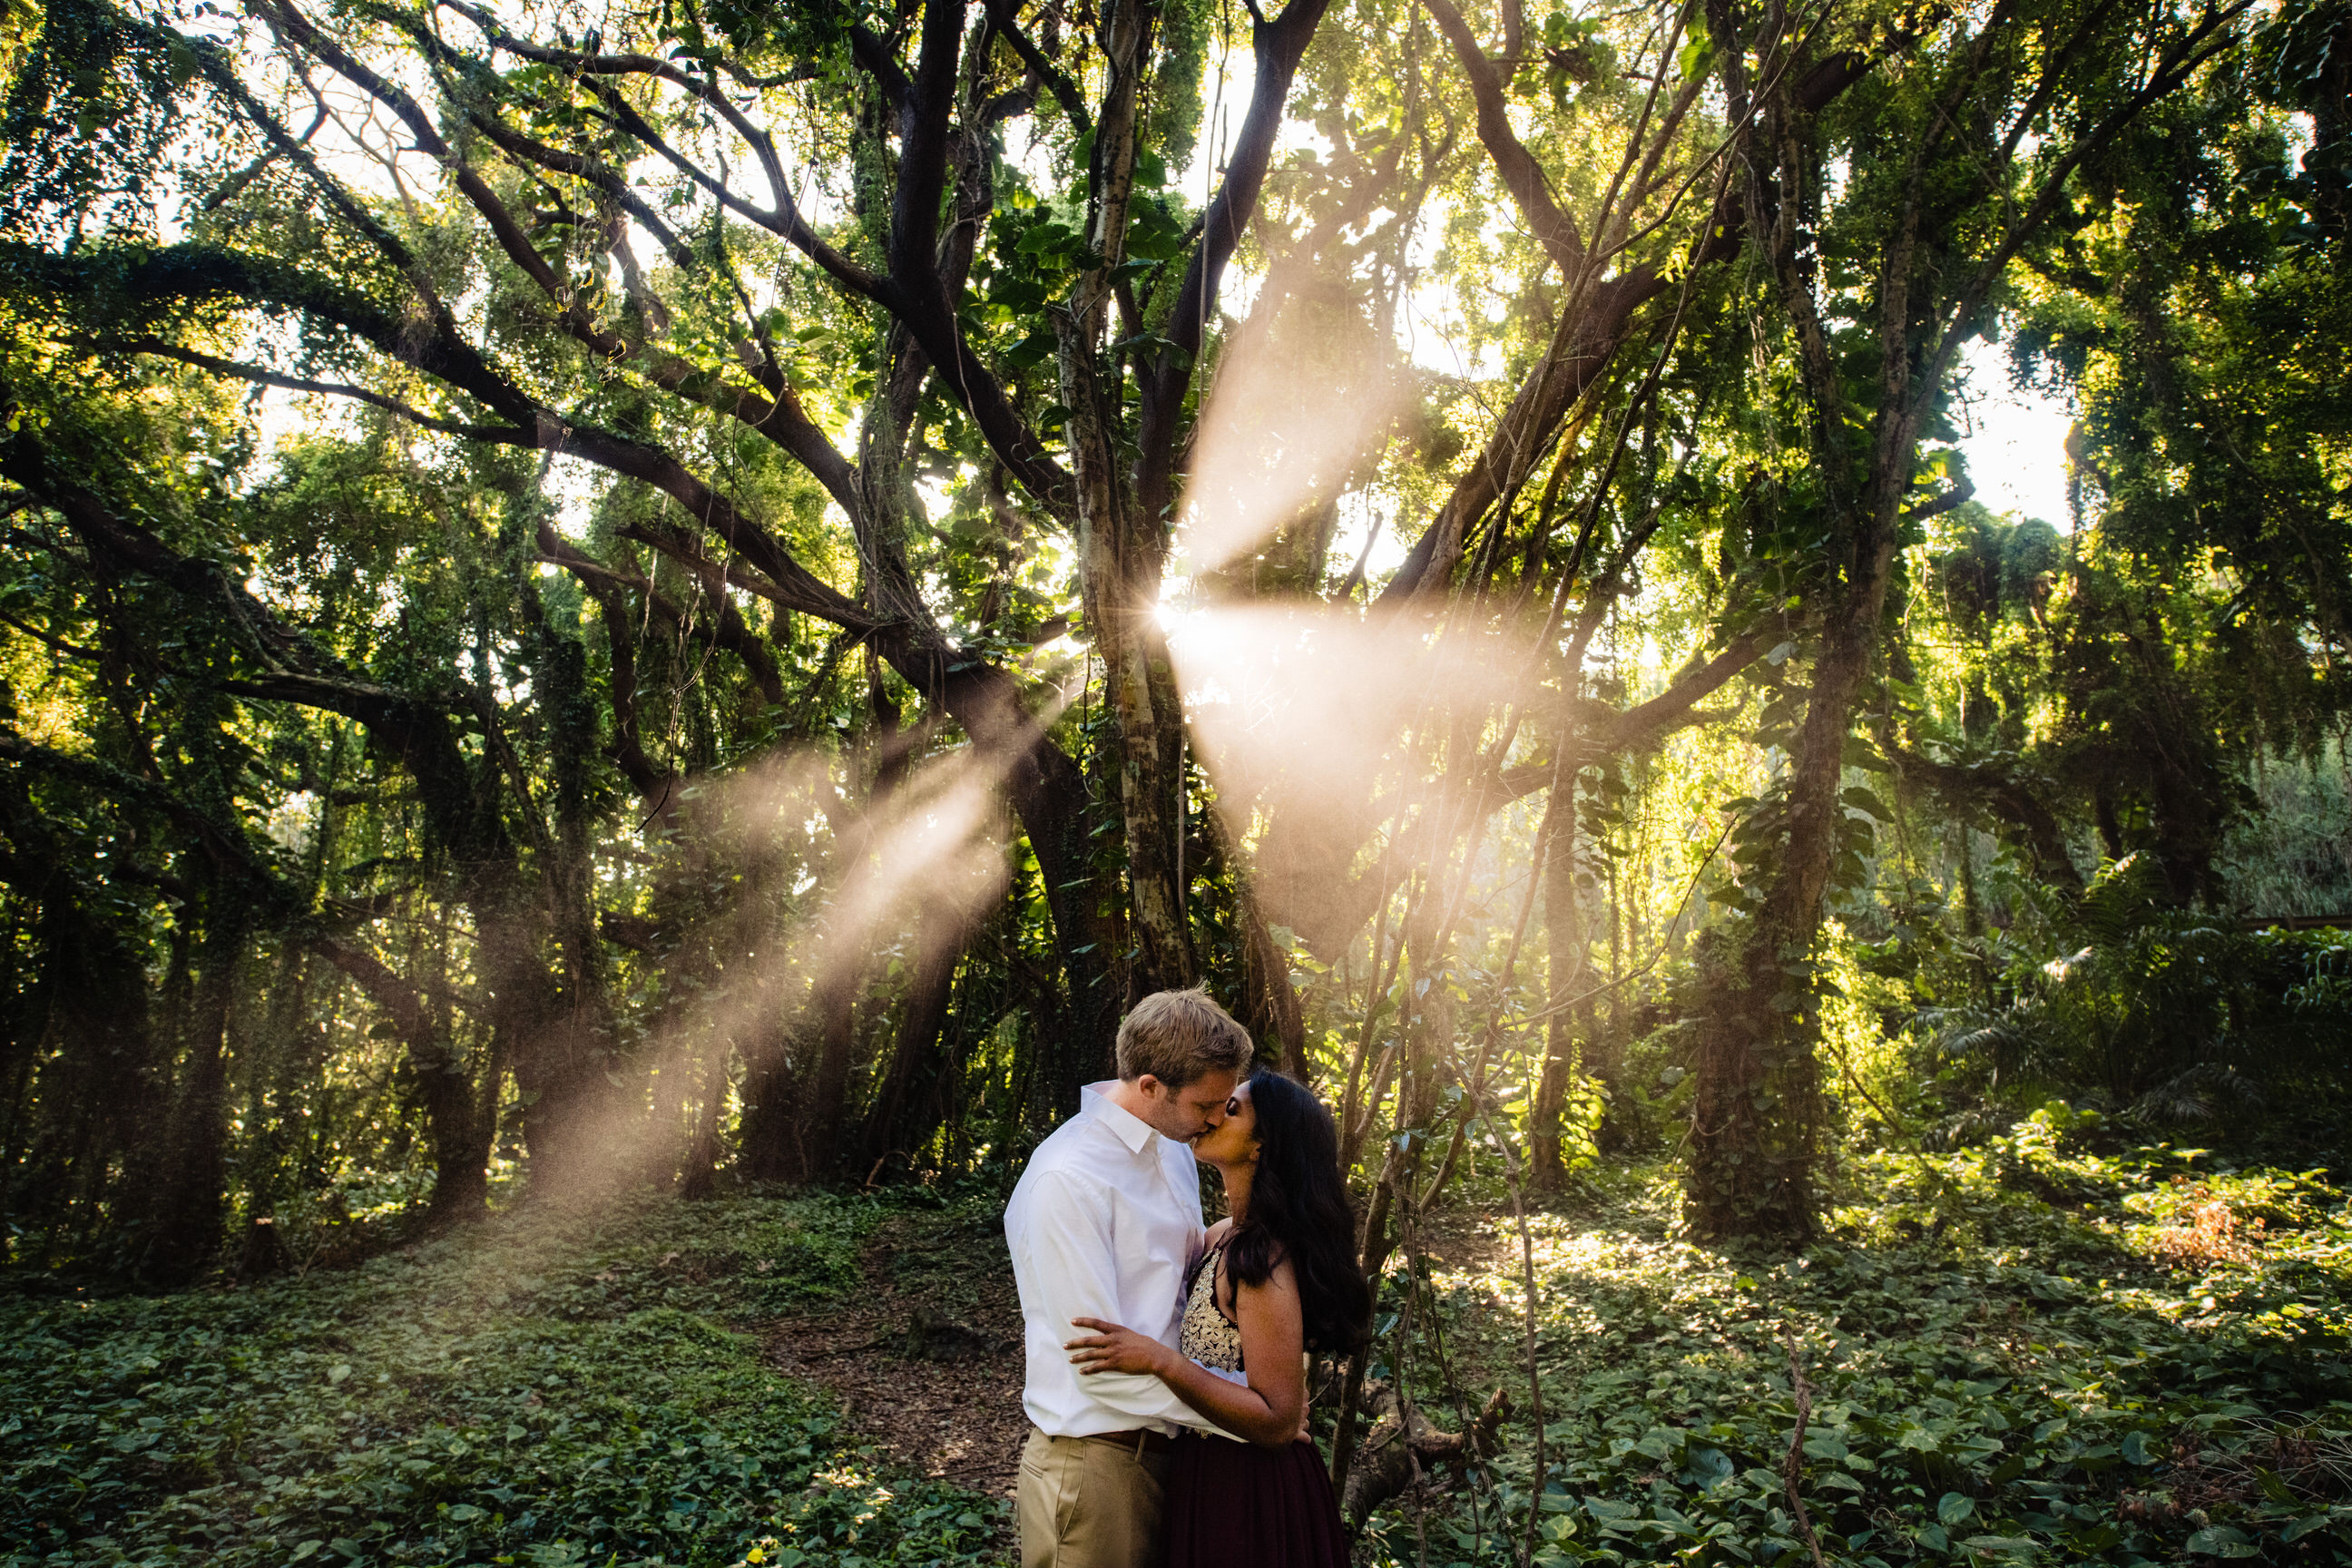 Forest kiss against sun rays - photo by Angela Nelson Photography